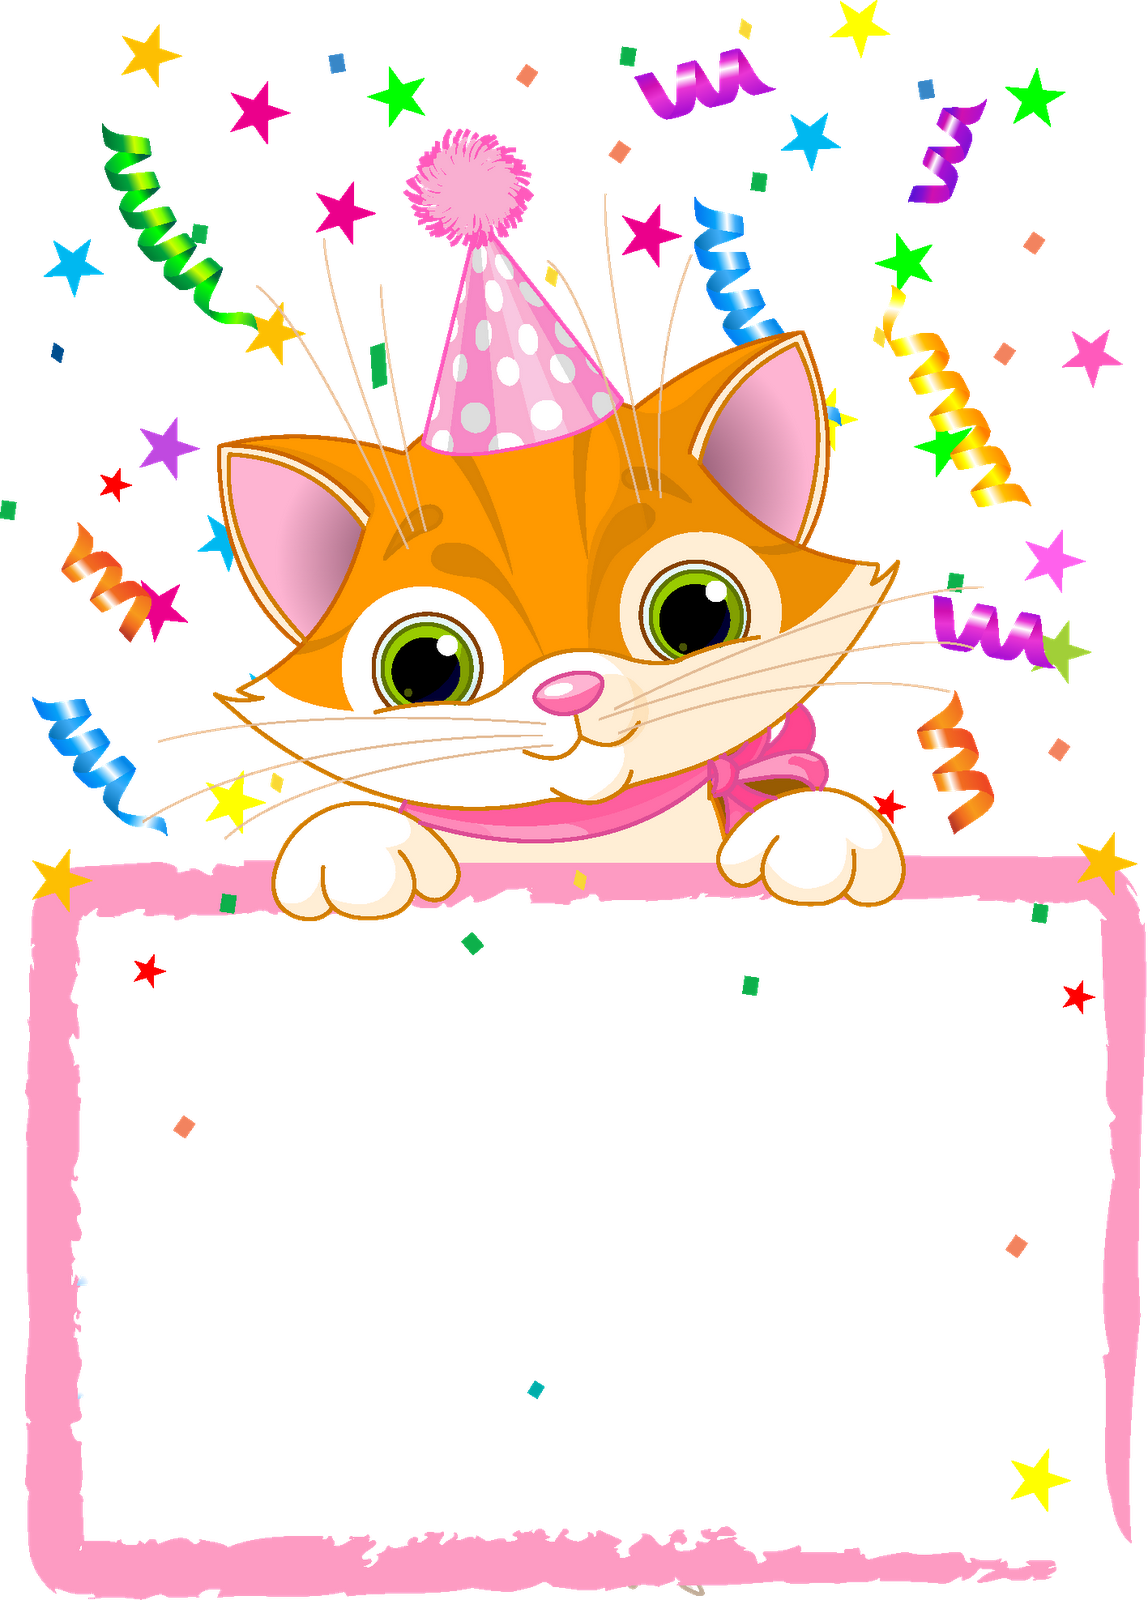 Quilt clipart happy birthday. Png marcos gratis para